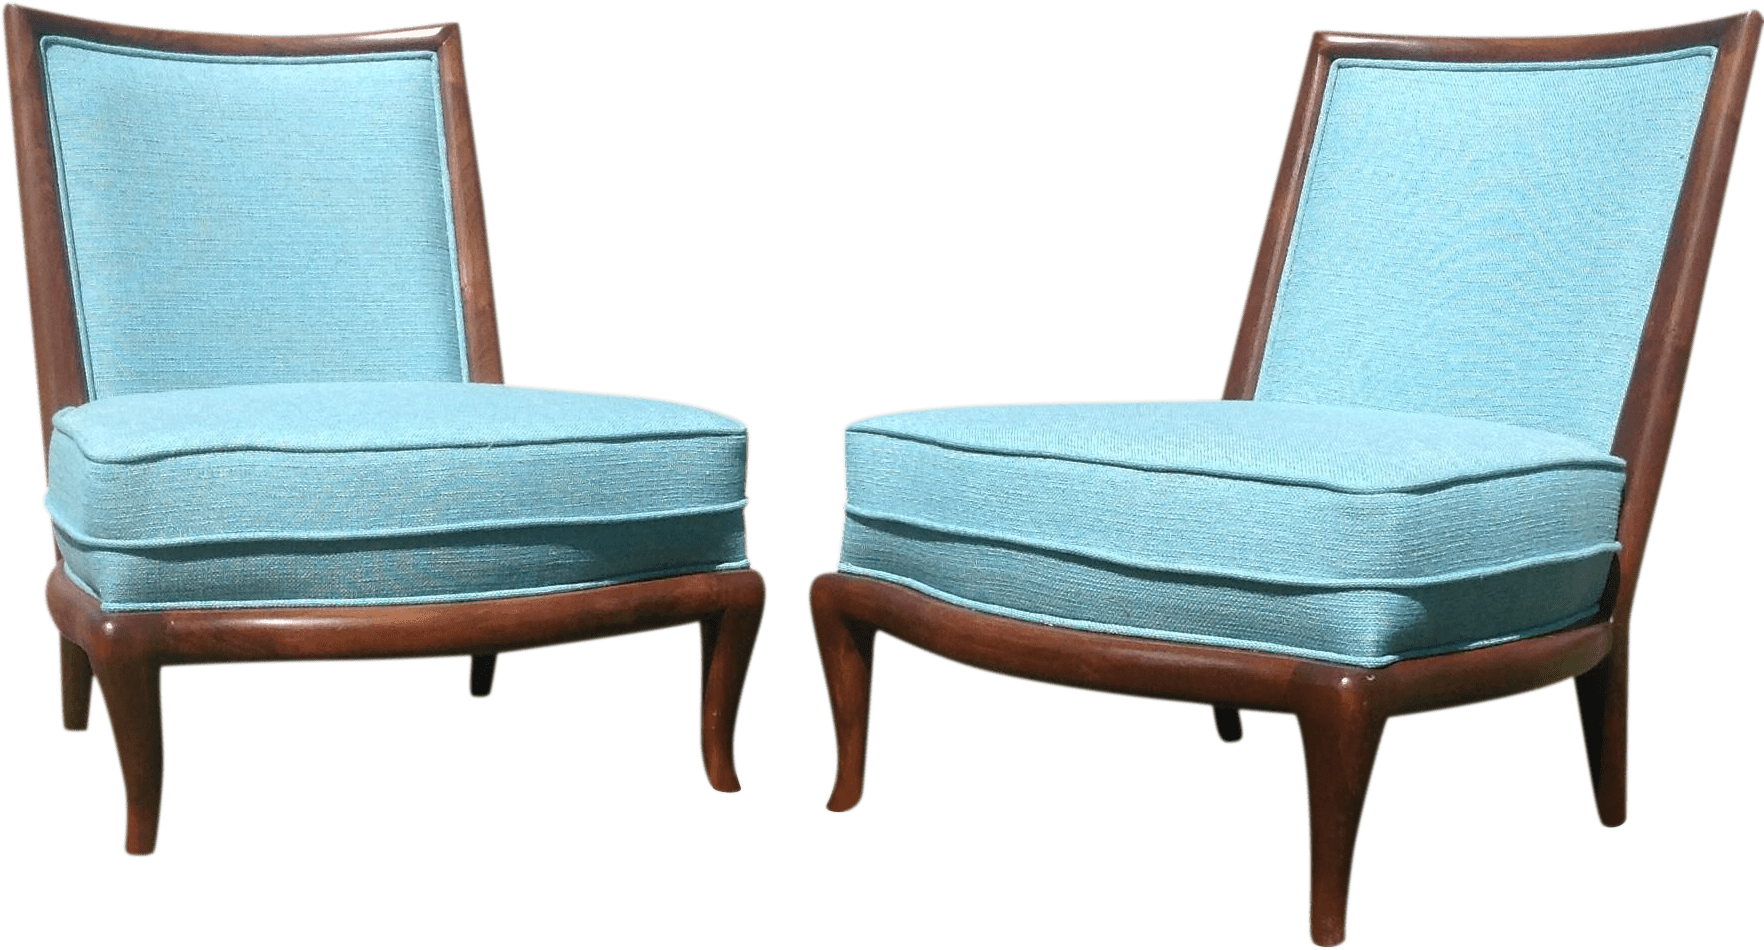 MidCentury Style Slipper Lounge Chairs  A Pair  Chairish